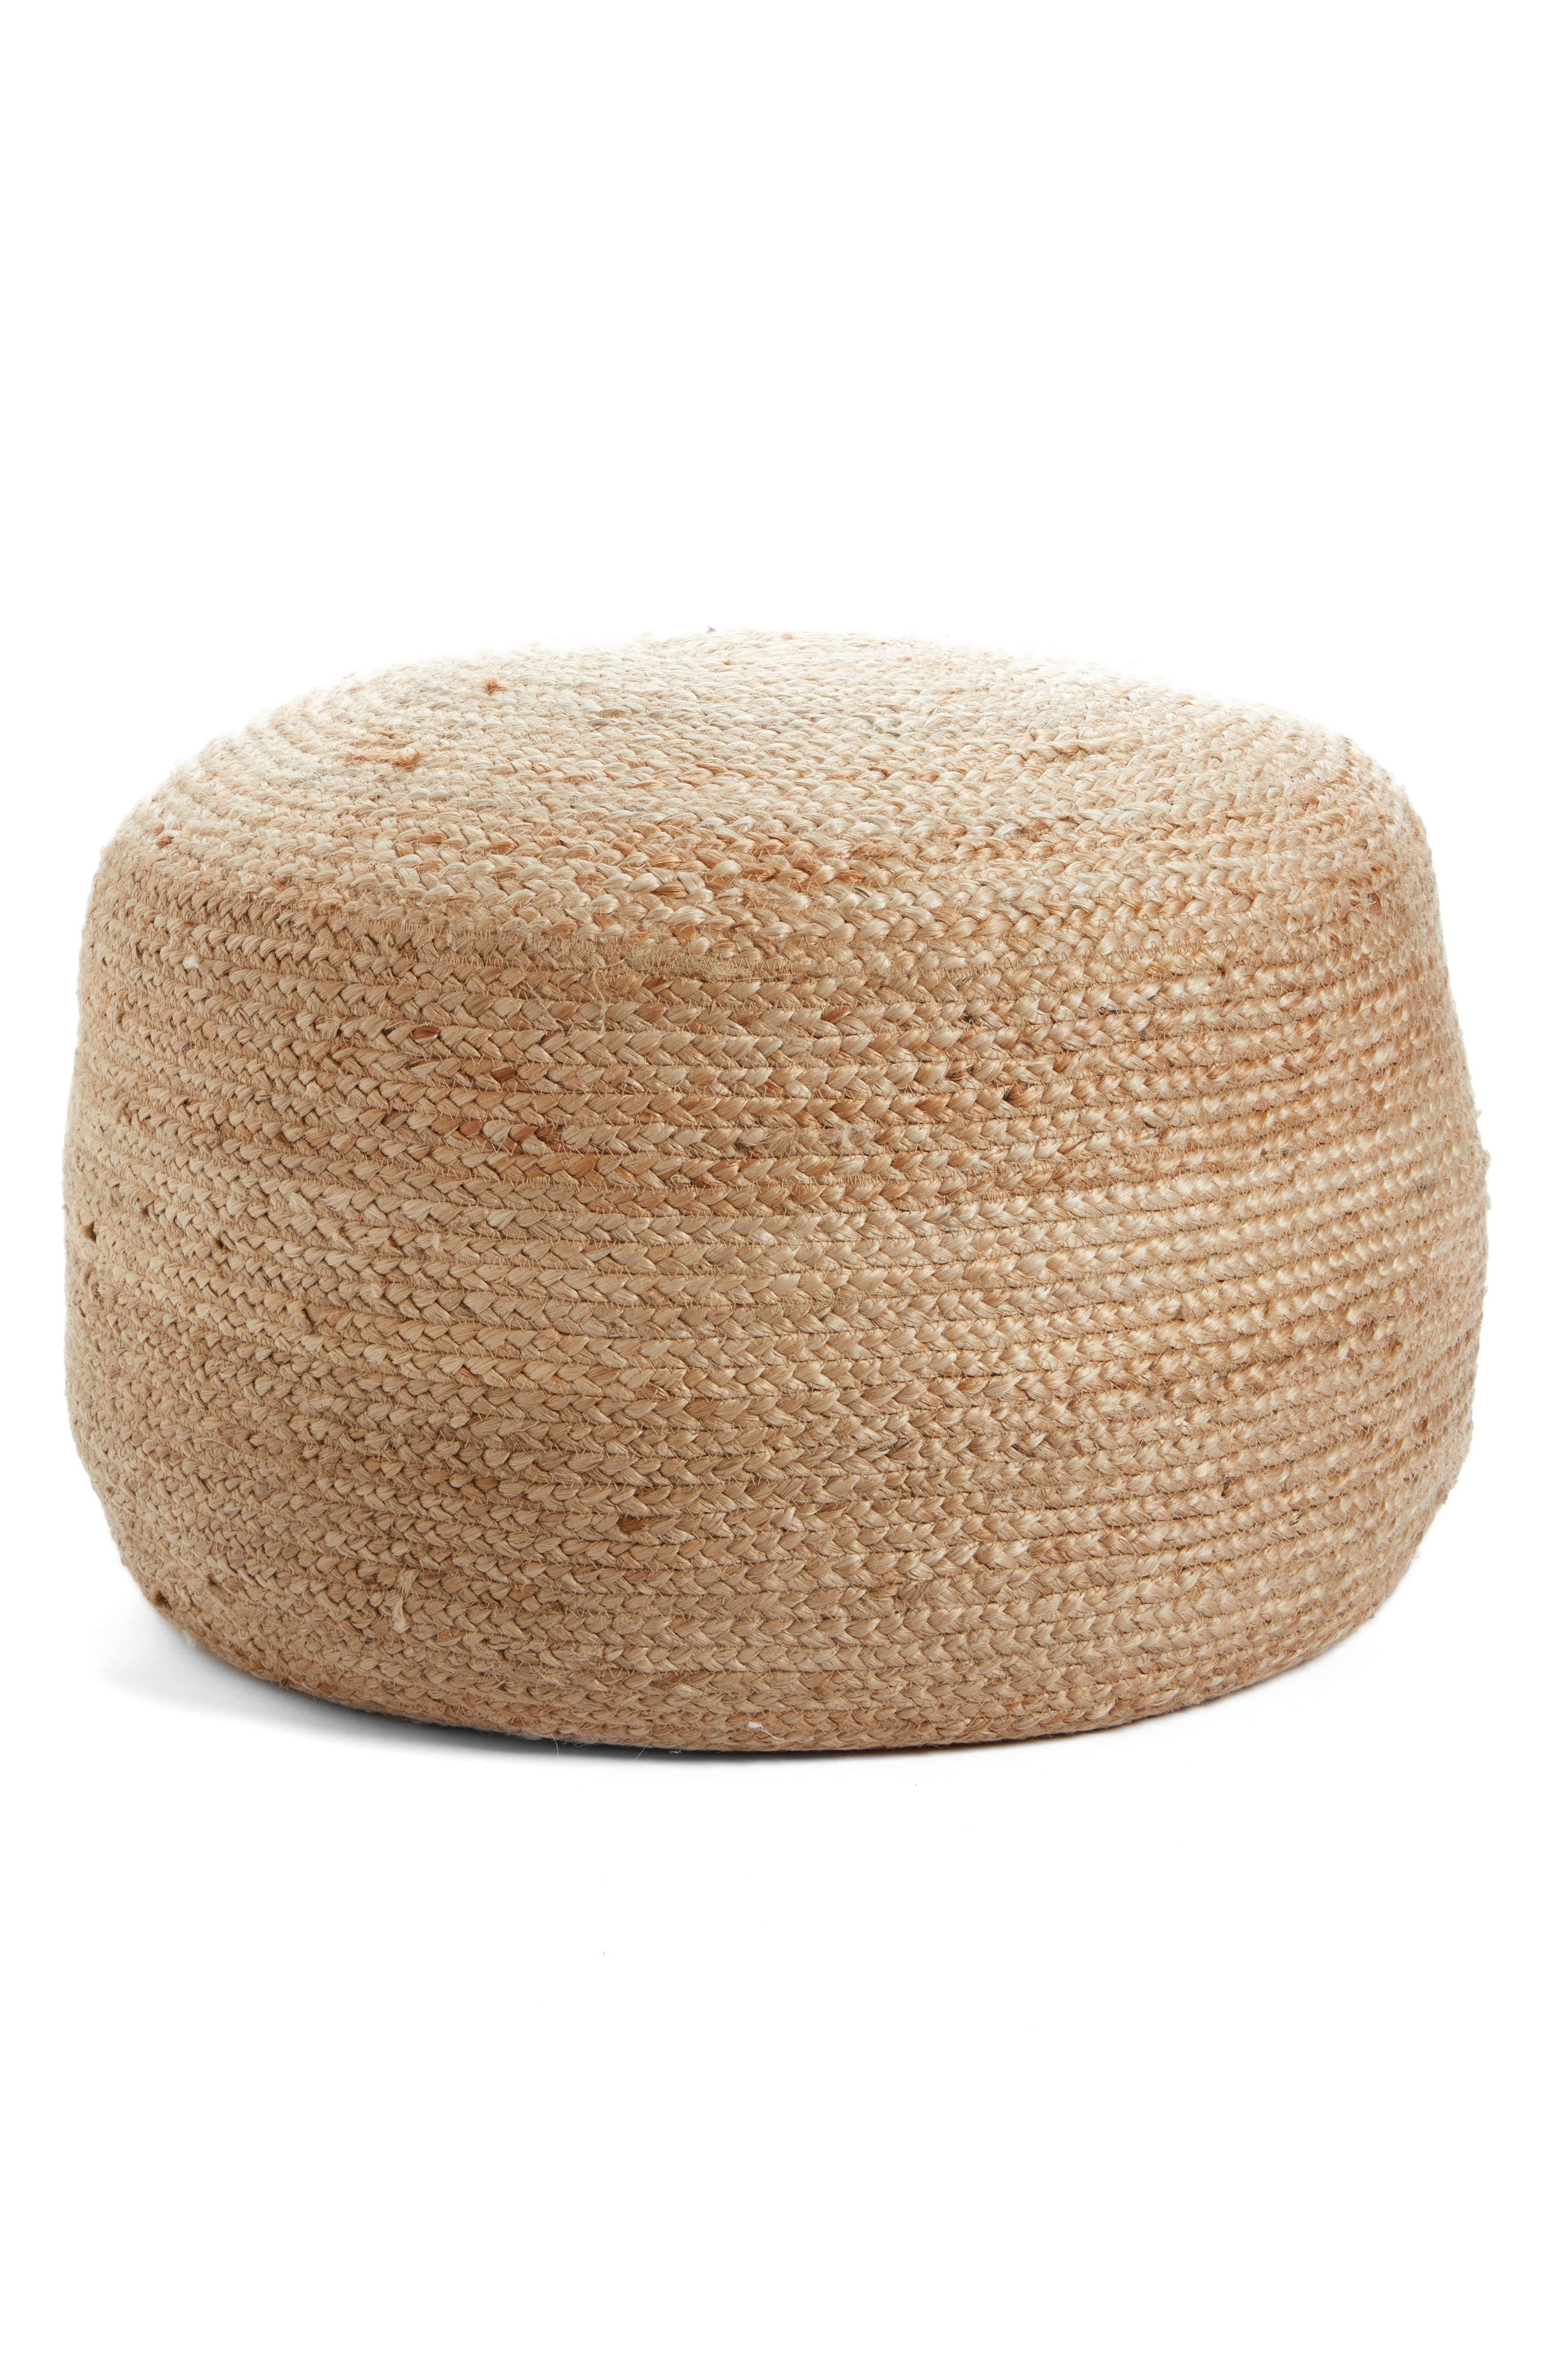 Alternate Image 1 Selected - Nordstrom at Home Indoor/Outdoor Jute Pouf